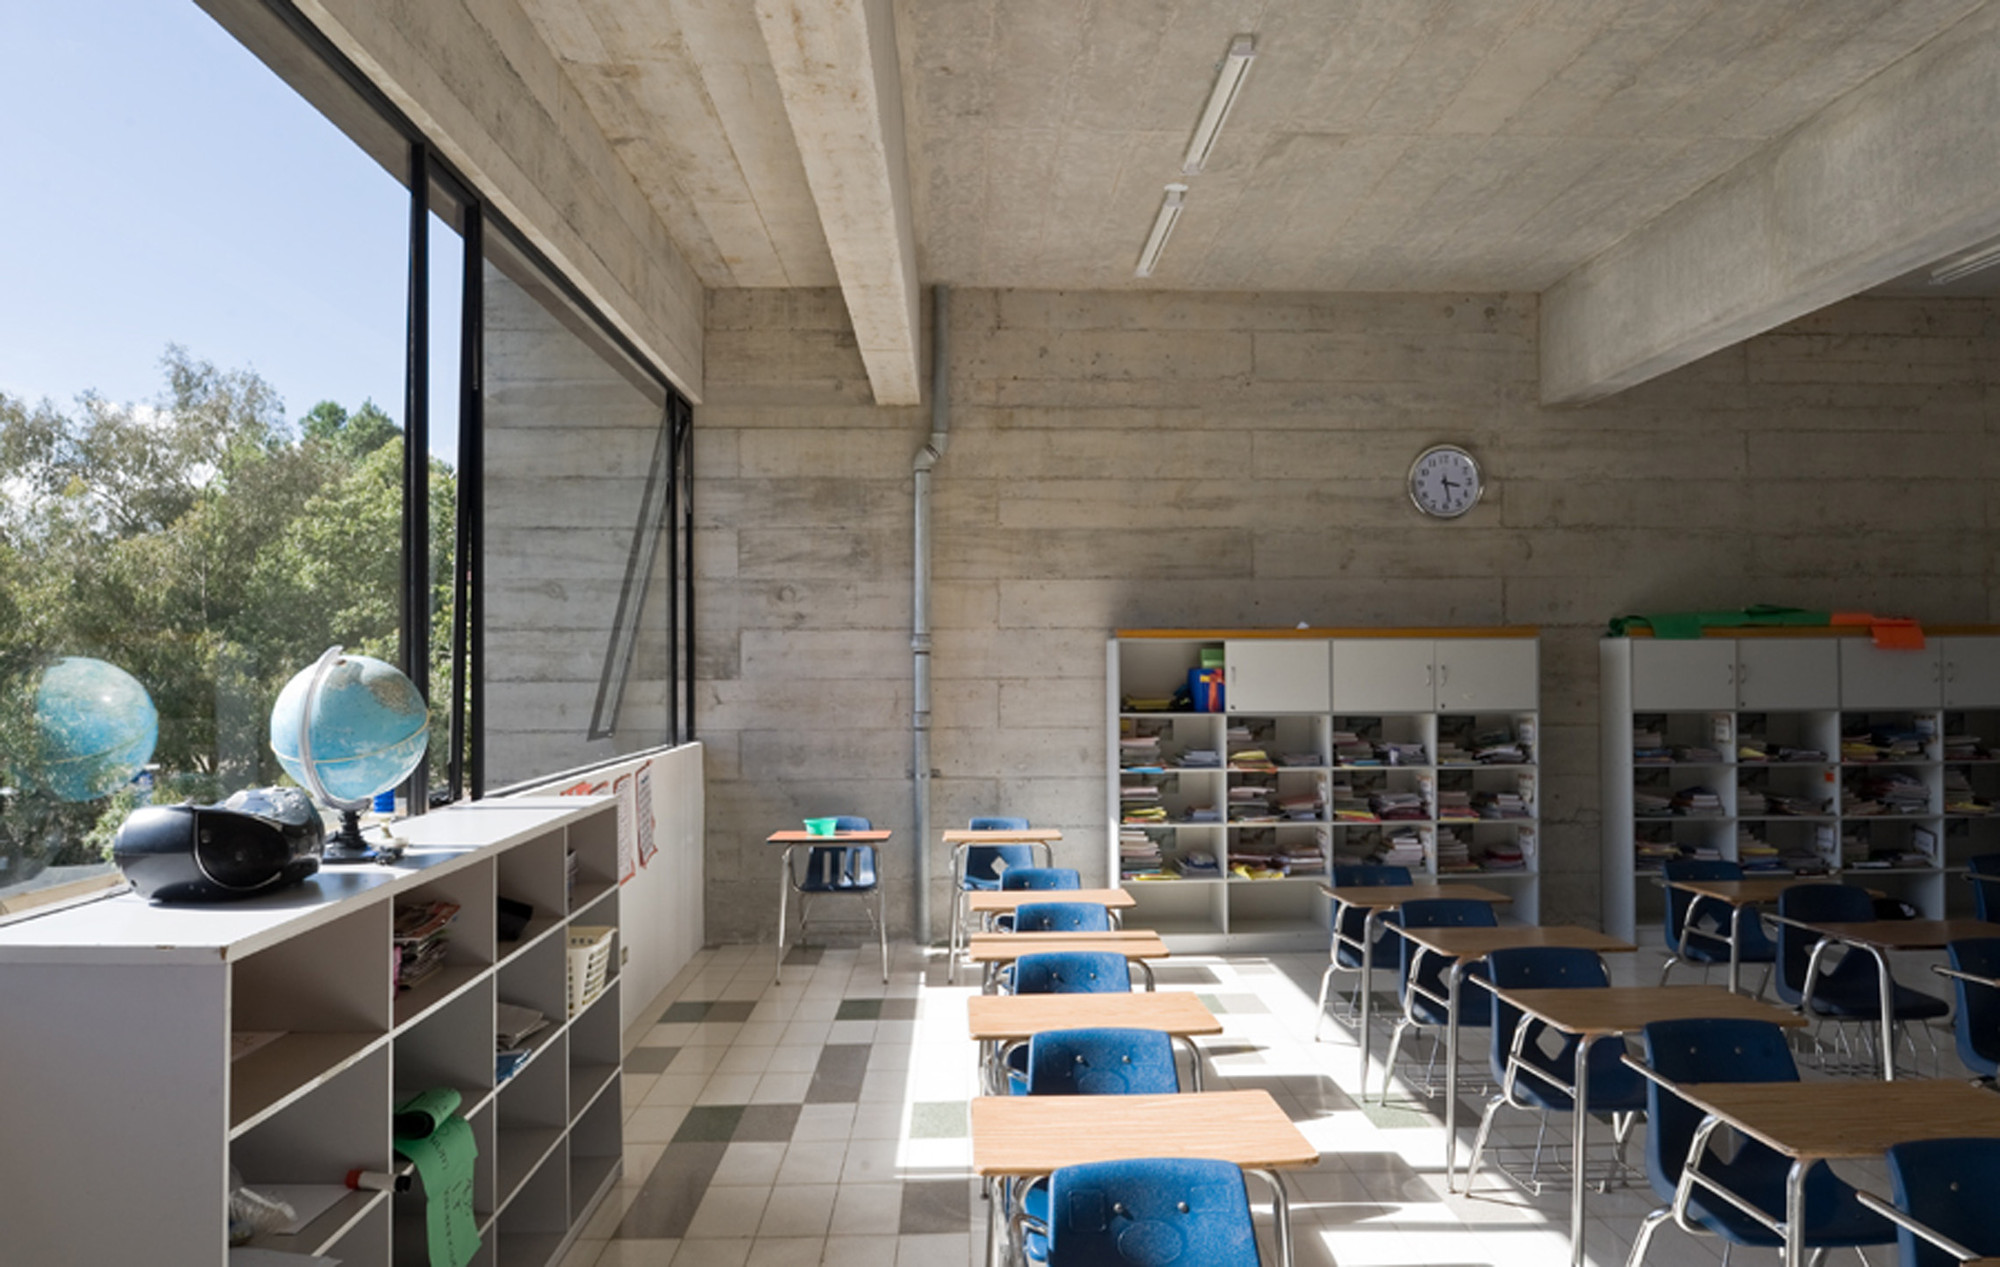 Metropolitan school extension paz arquitectura archdaily for Aulas web arquitectura